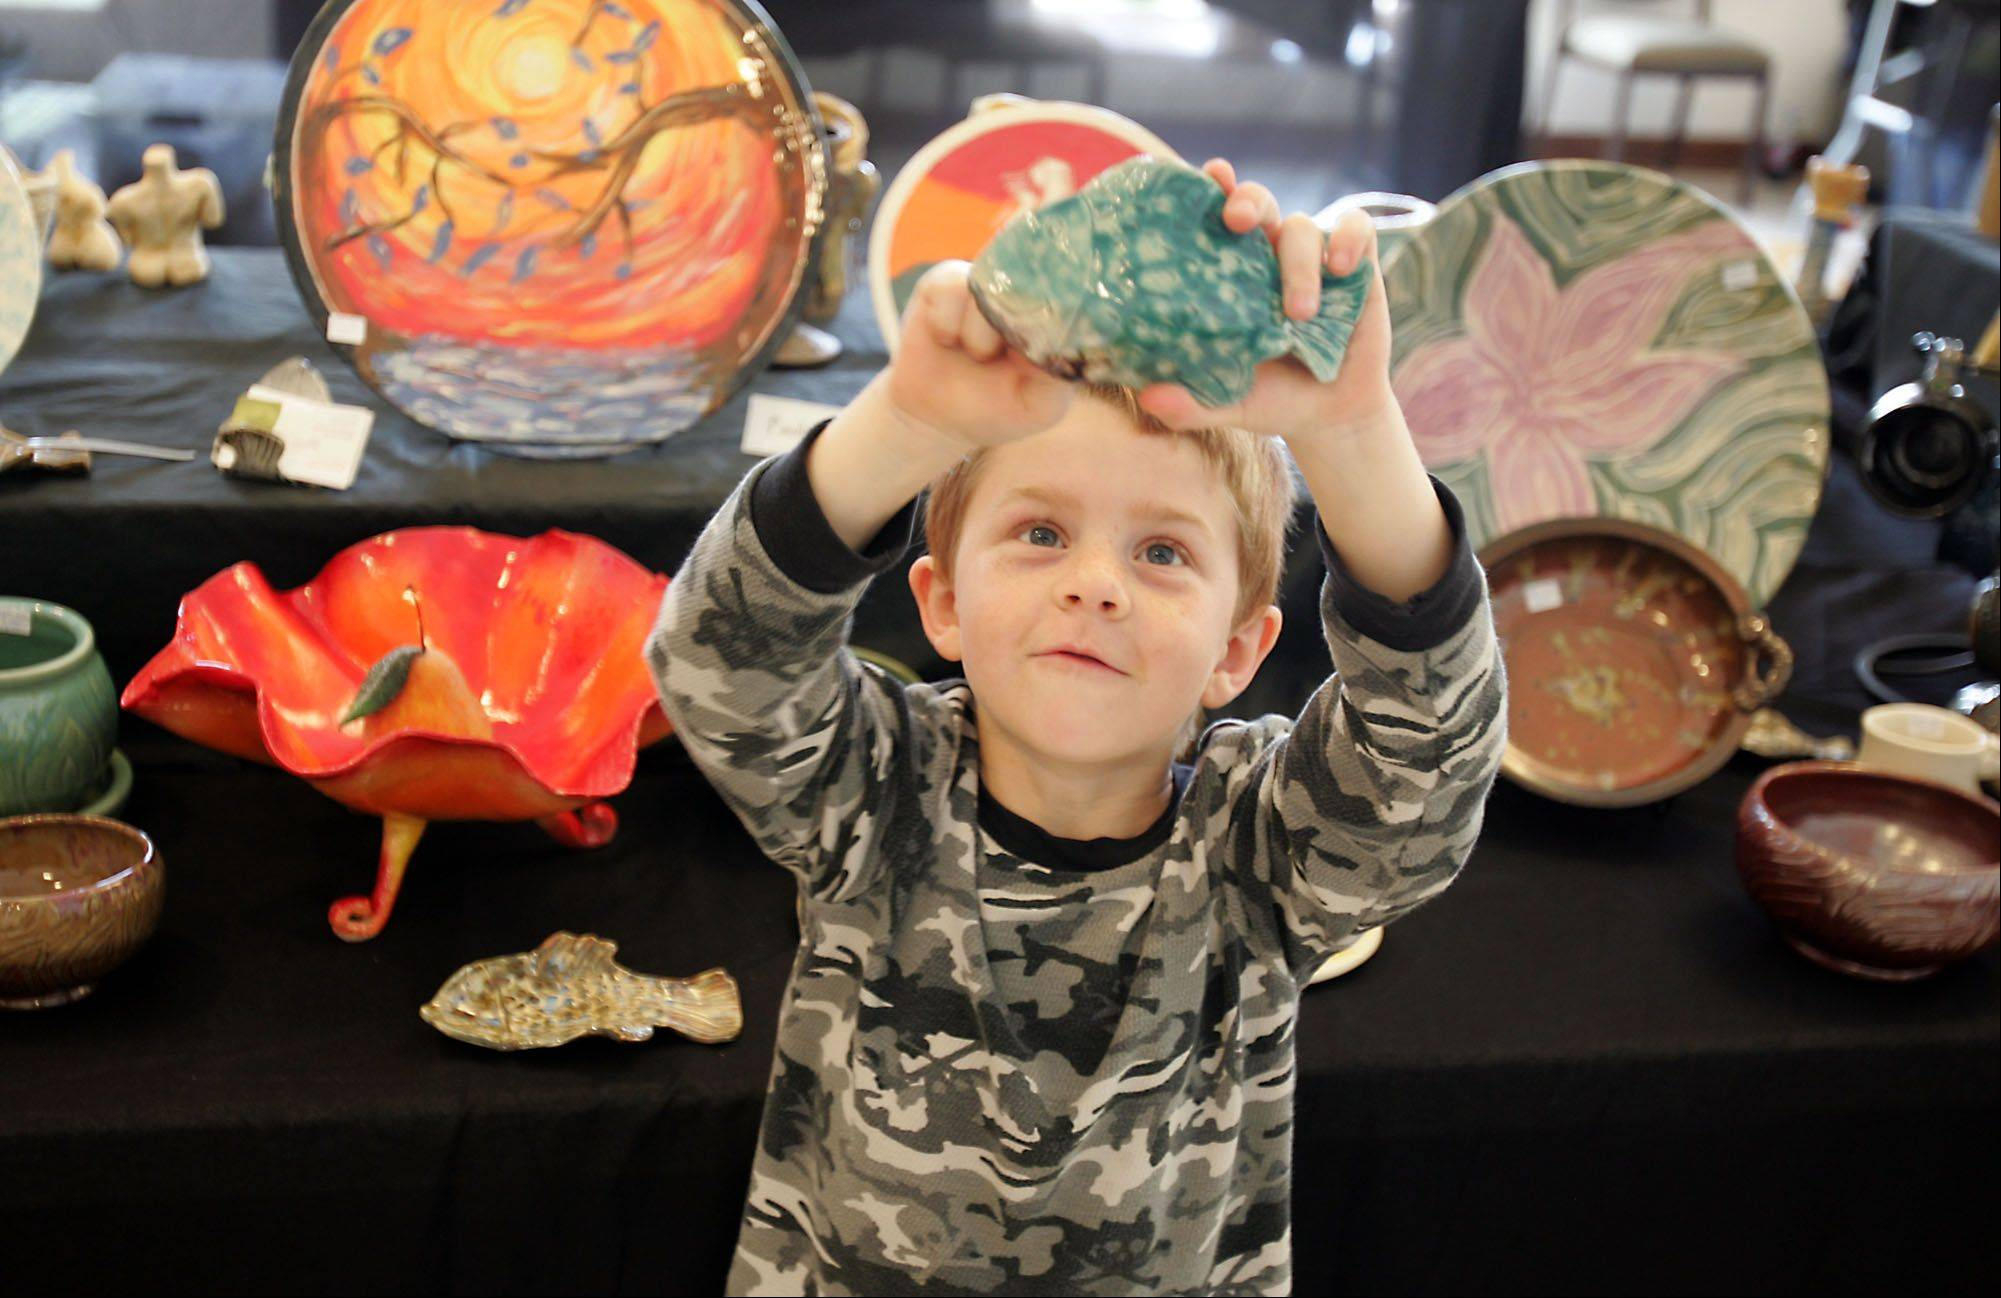 Aidan Kikta, 6, of Romeoville, enjoys holding a ceramic fish, during Cantigny Park's third Ceramic Arts Show.